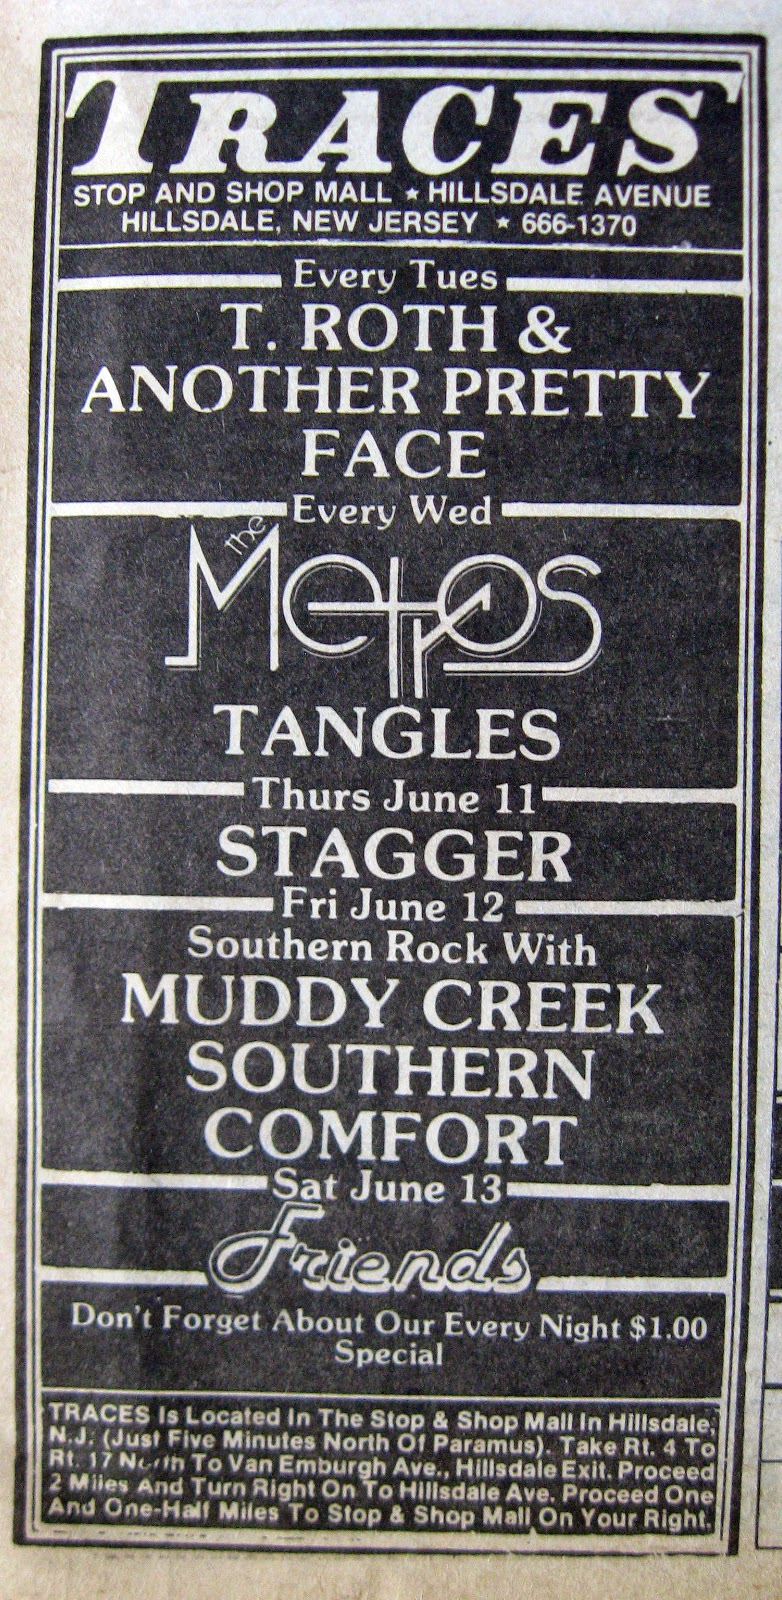 Traces band line up 1981